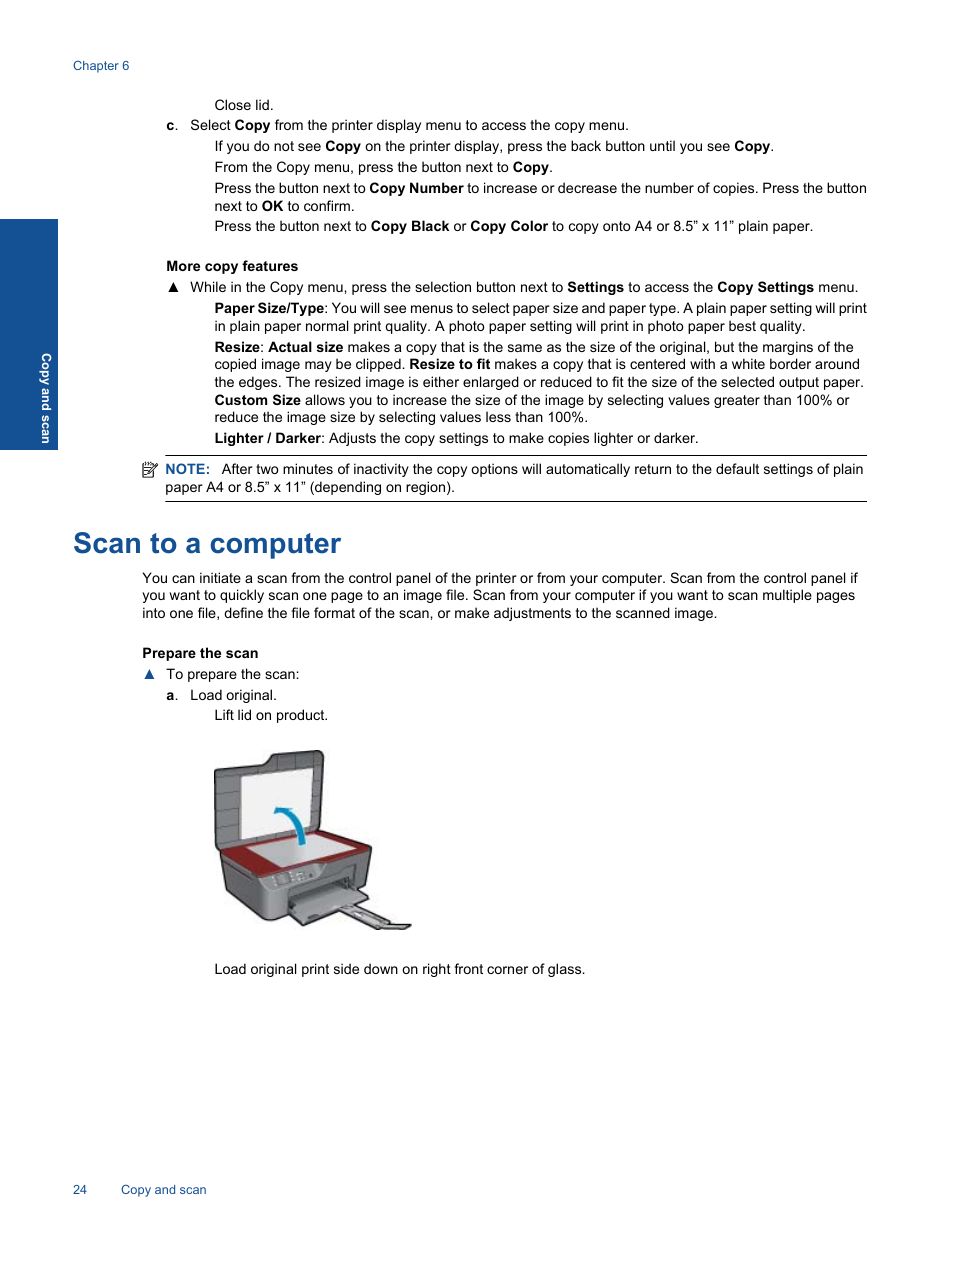 Scan to a computer | HP 3070 B611 User Manual | Page 26 / 60